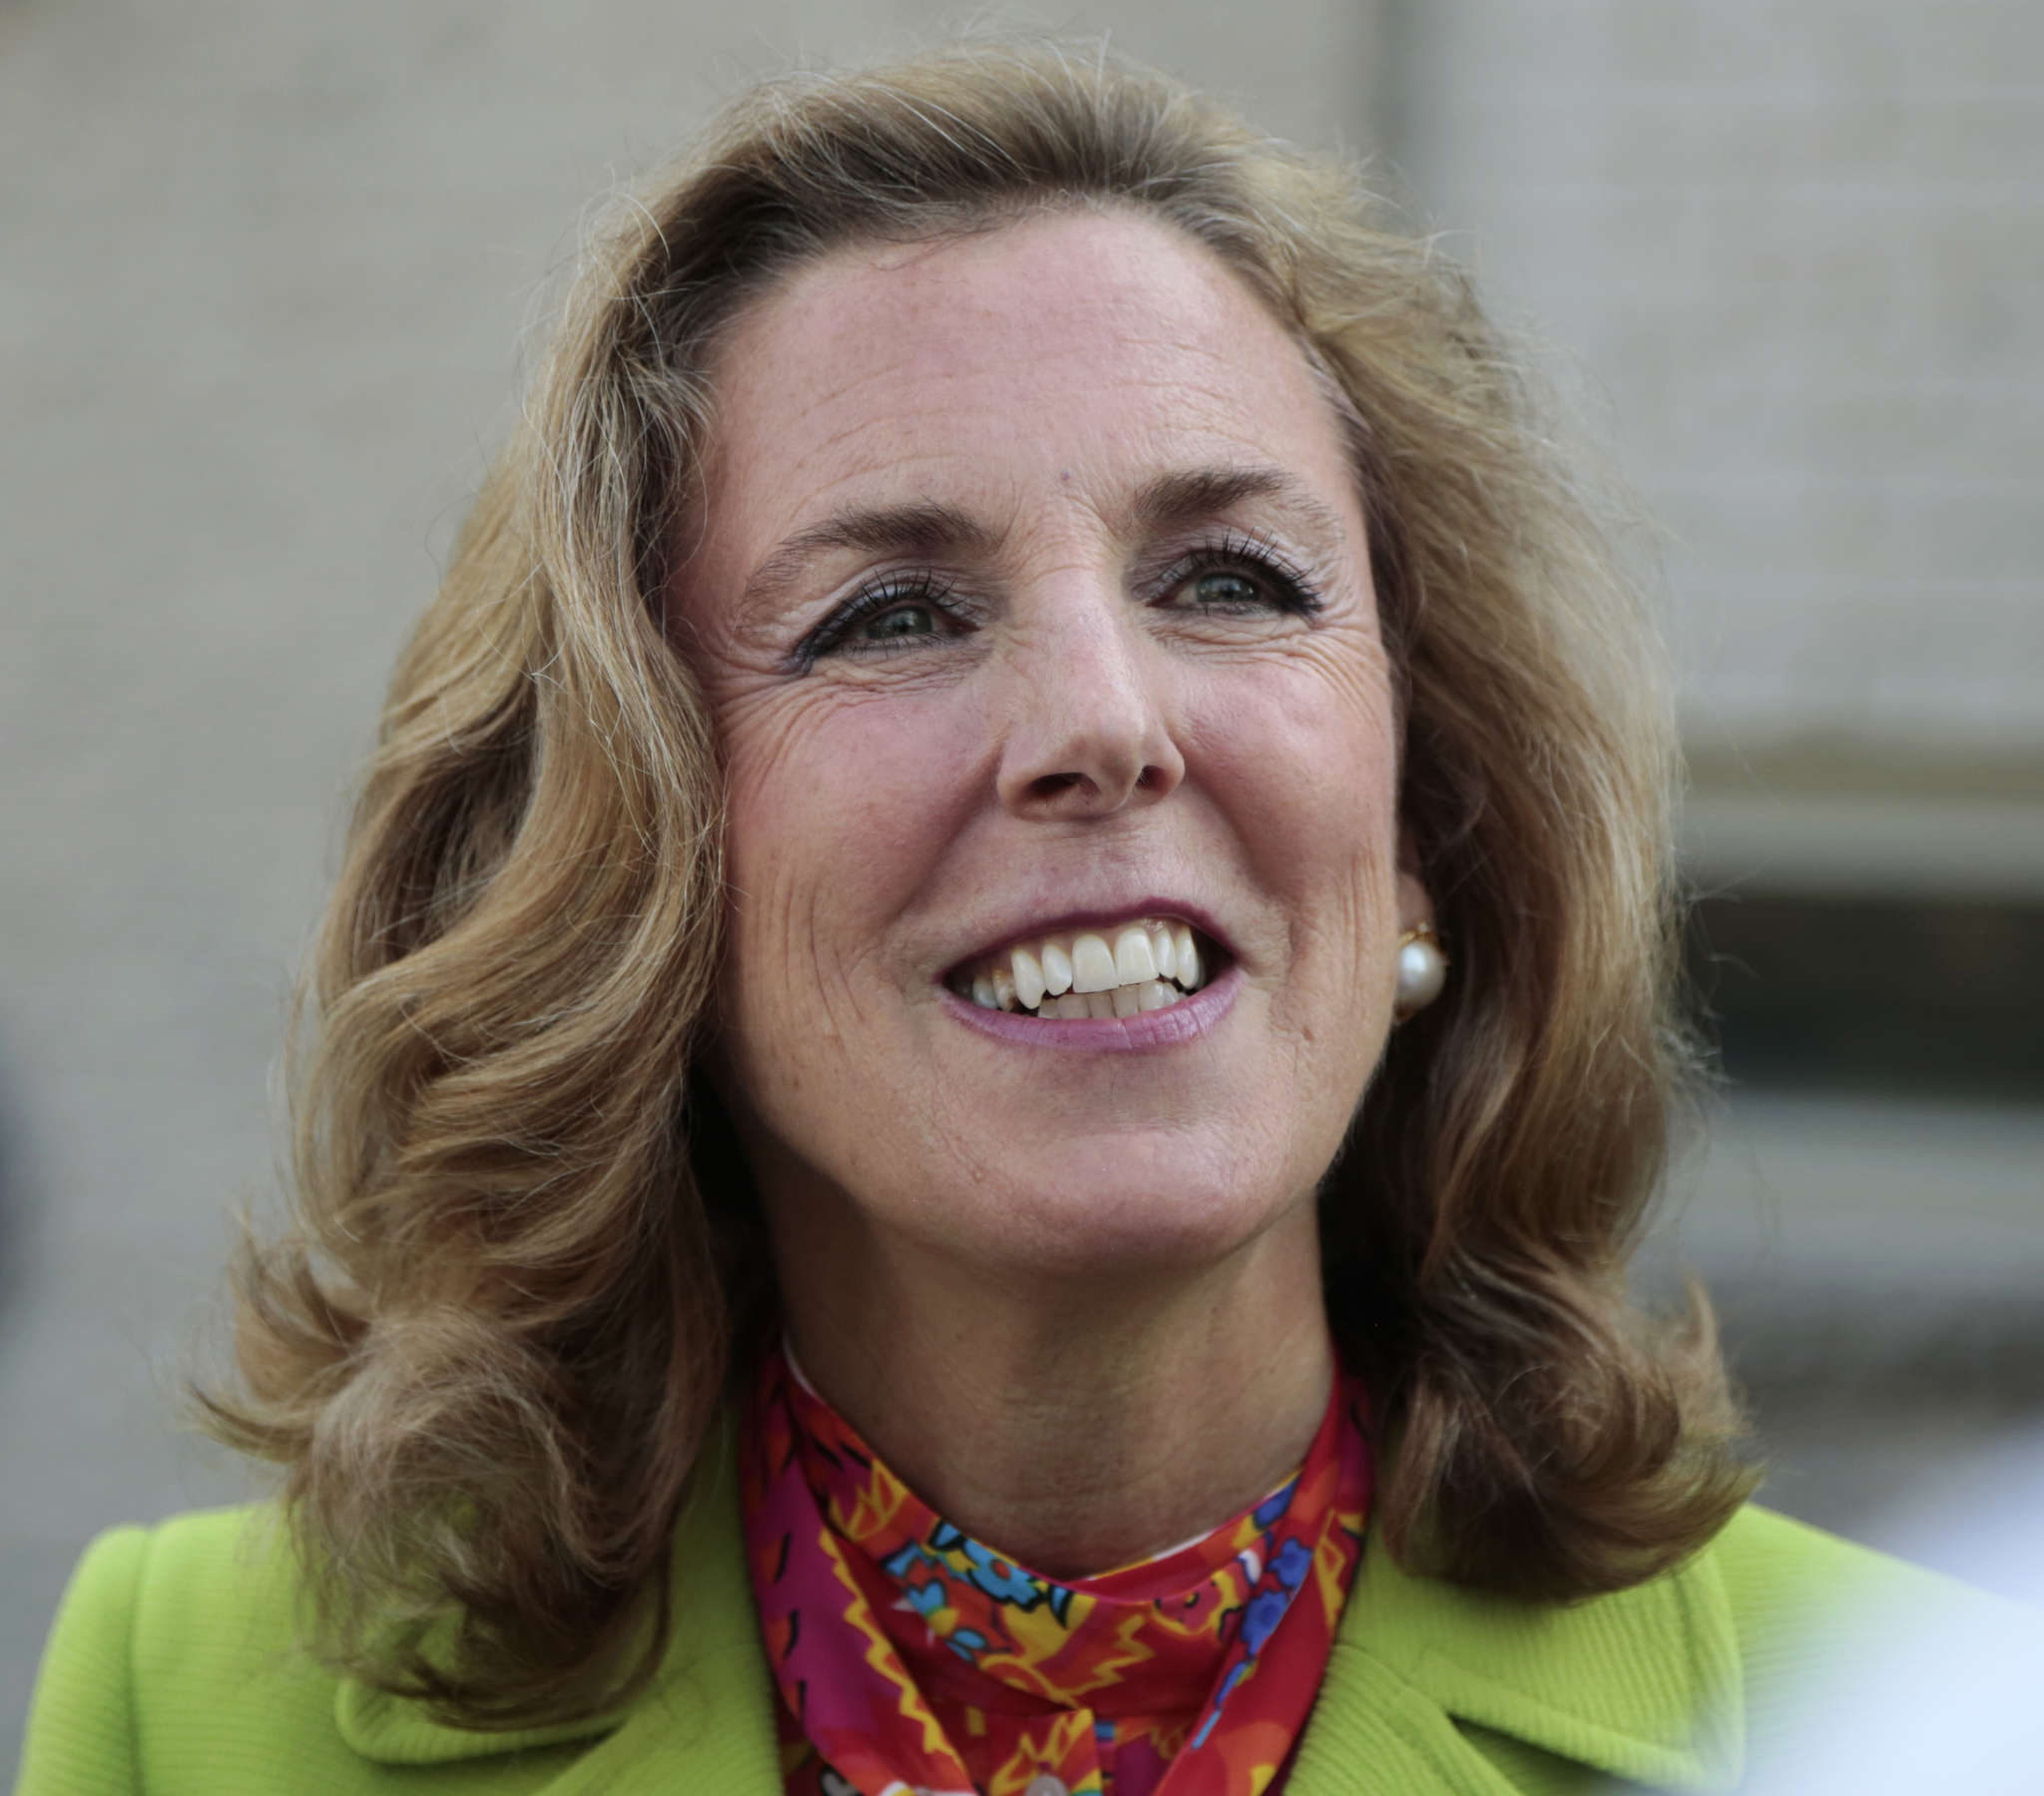 Katie McGinty is pro-choice, which seems to go against her Catholic upbringing.